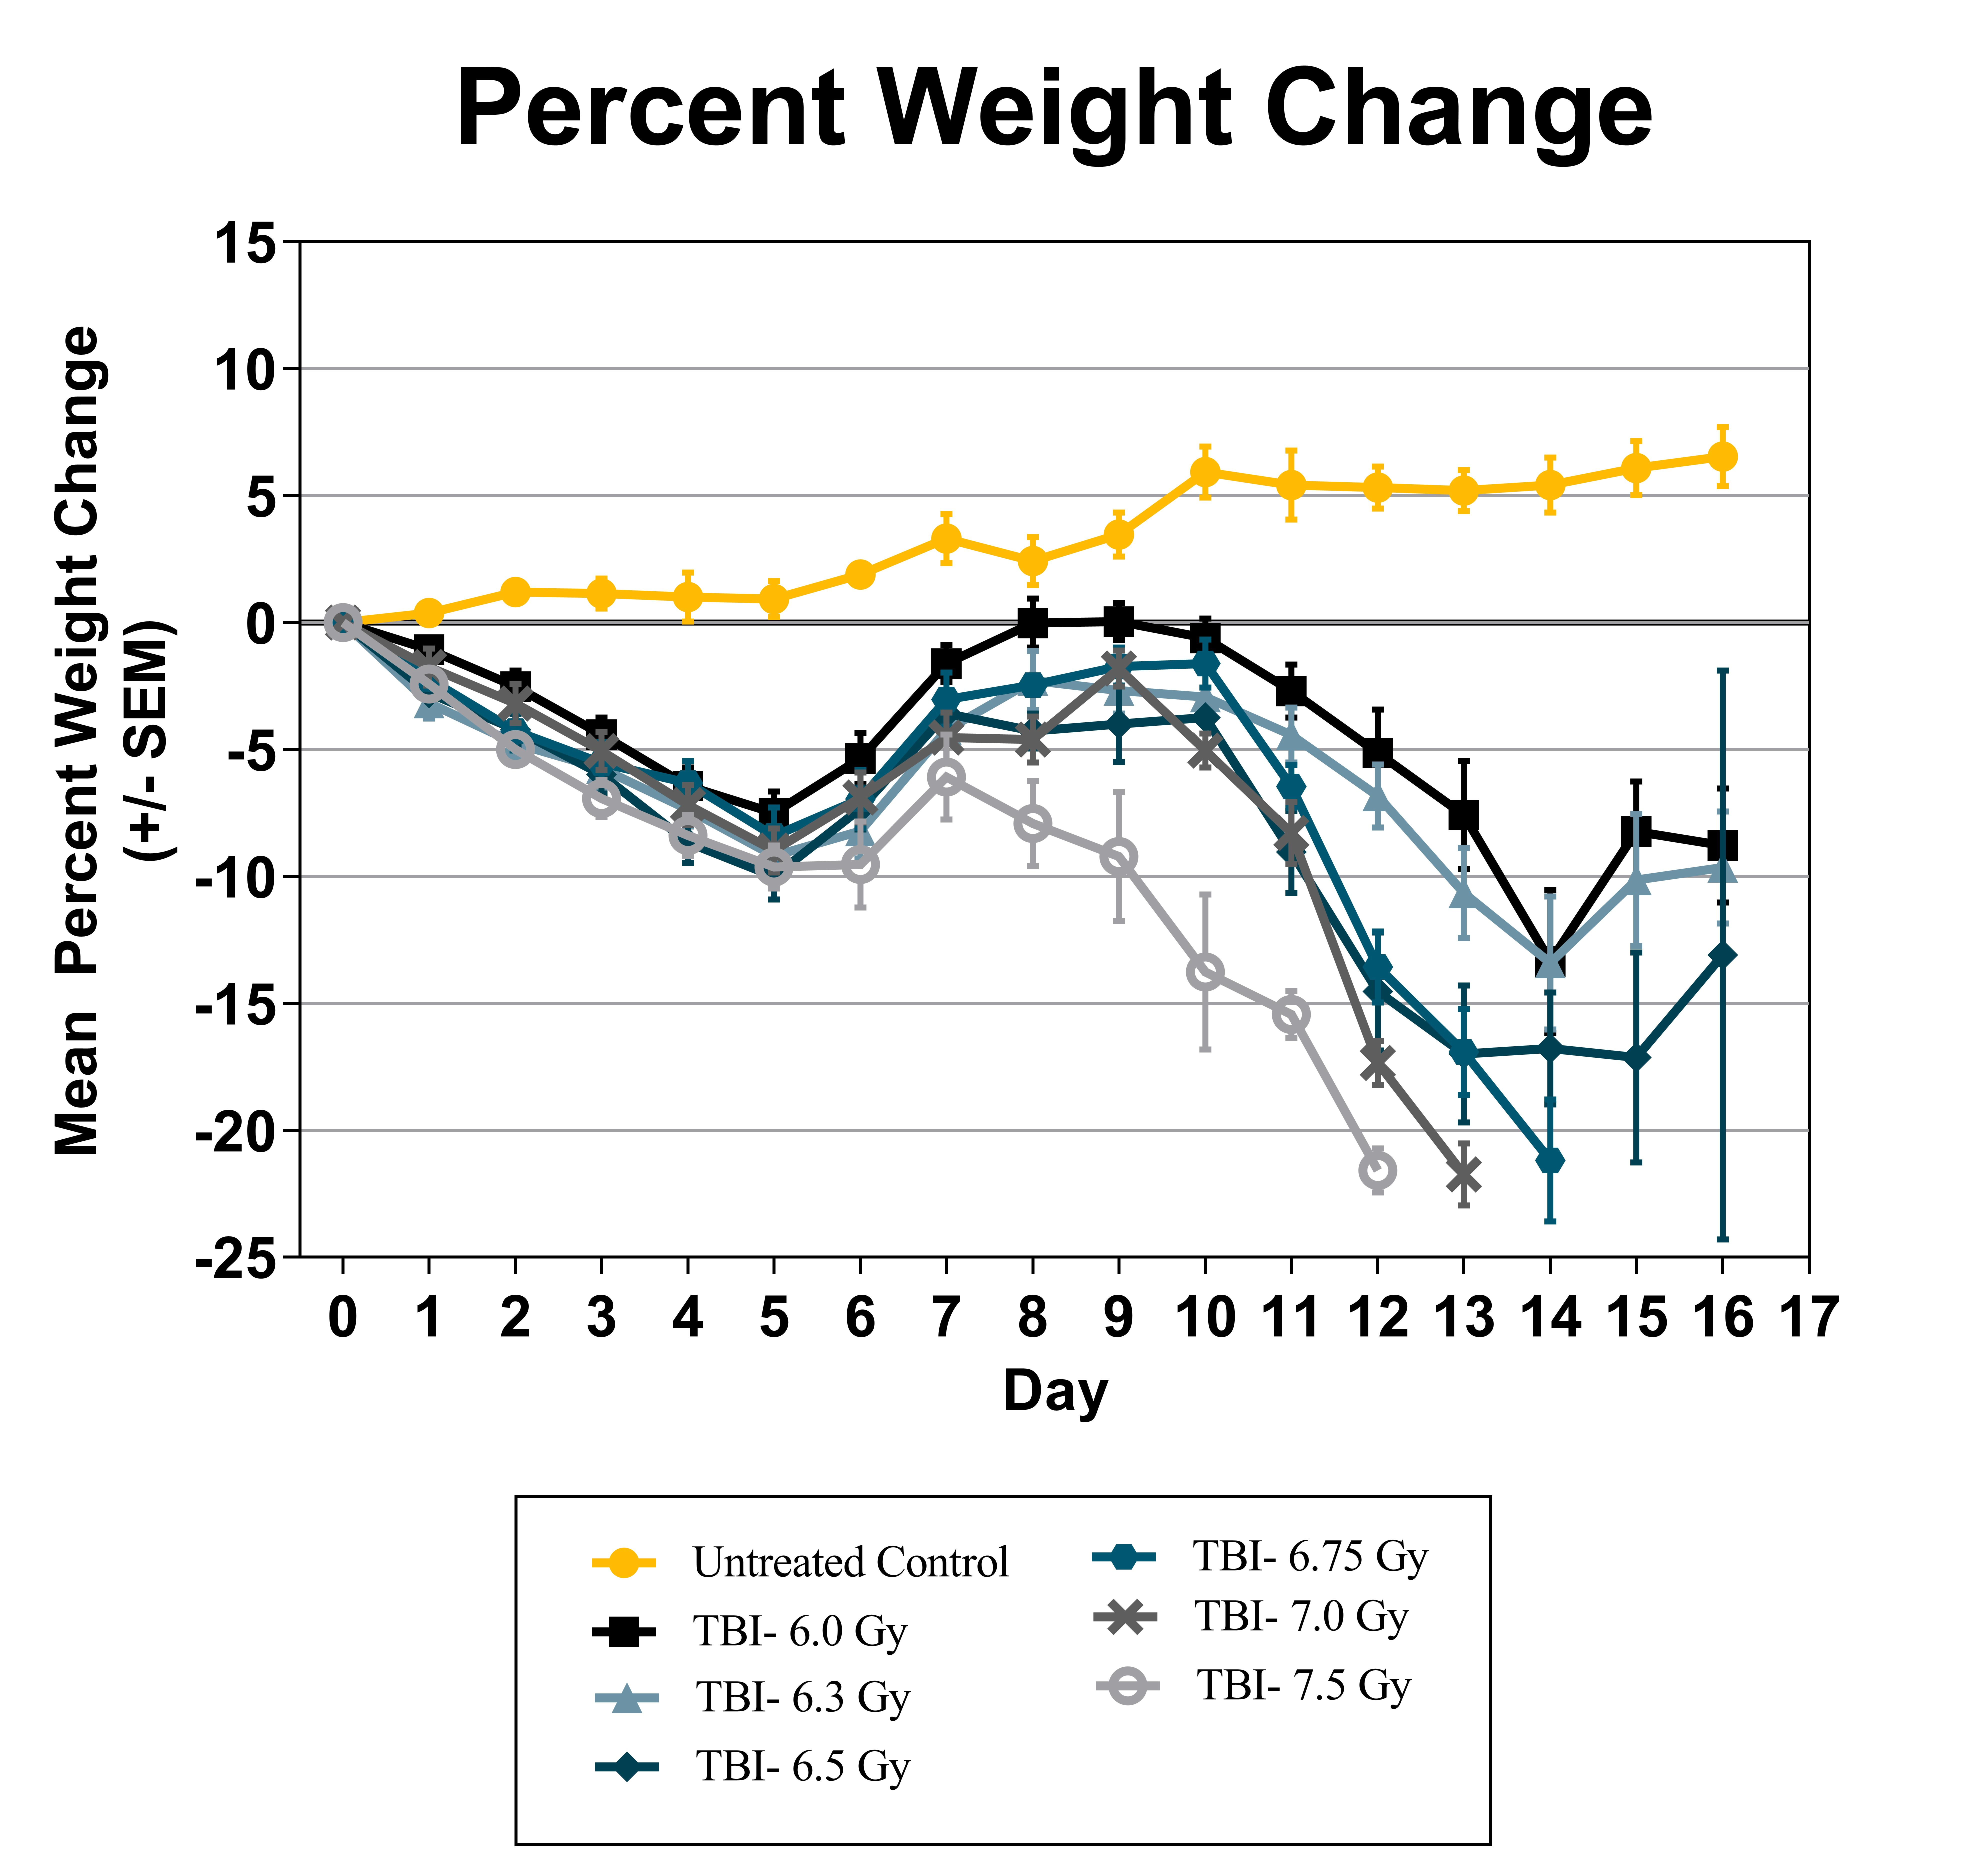 Percent Weight Change (TBI)